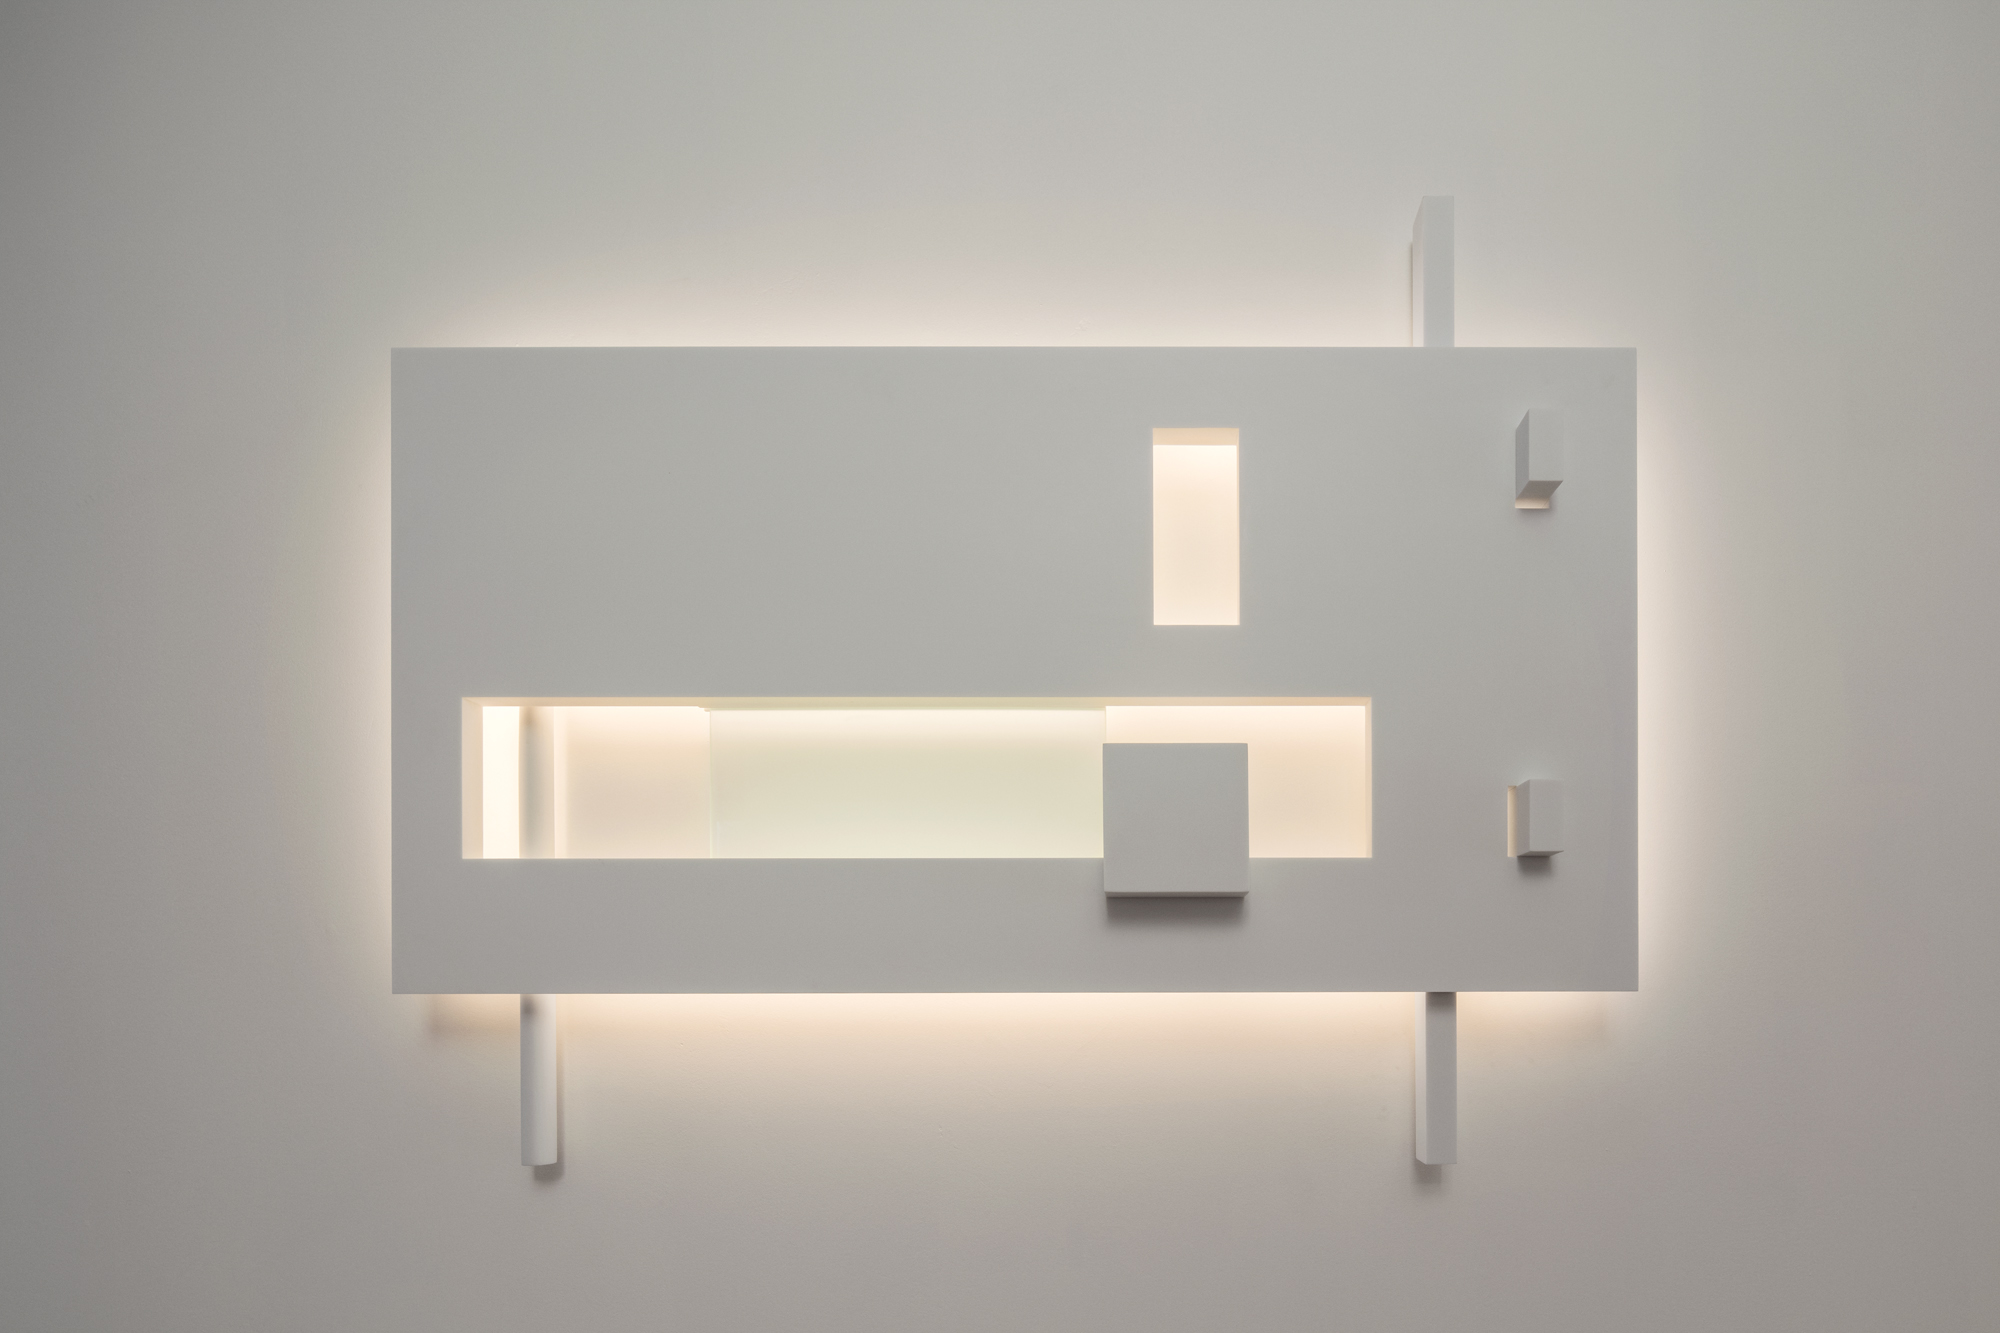 Barcelona I - Limited edition piece inspired by the Museum in Barcelona by Richard Meier